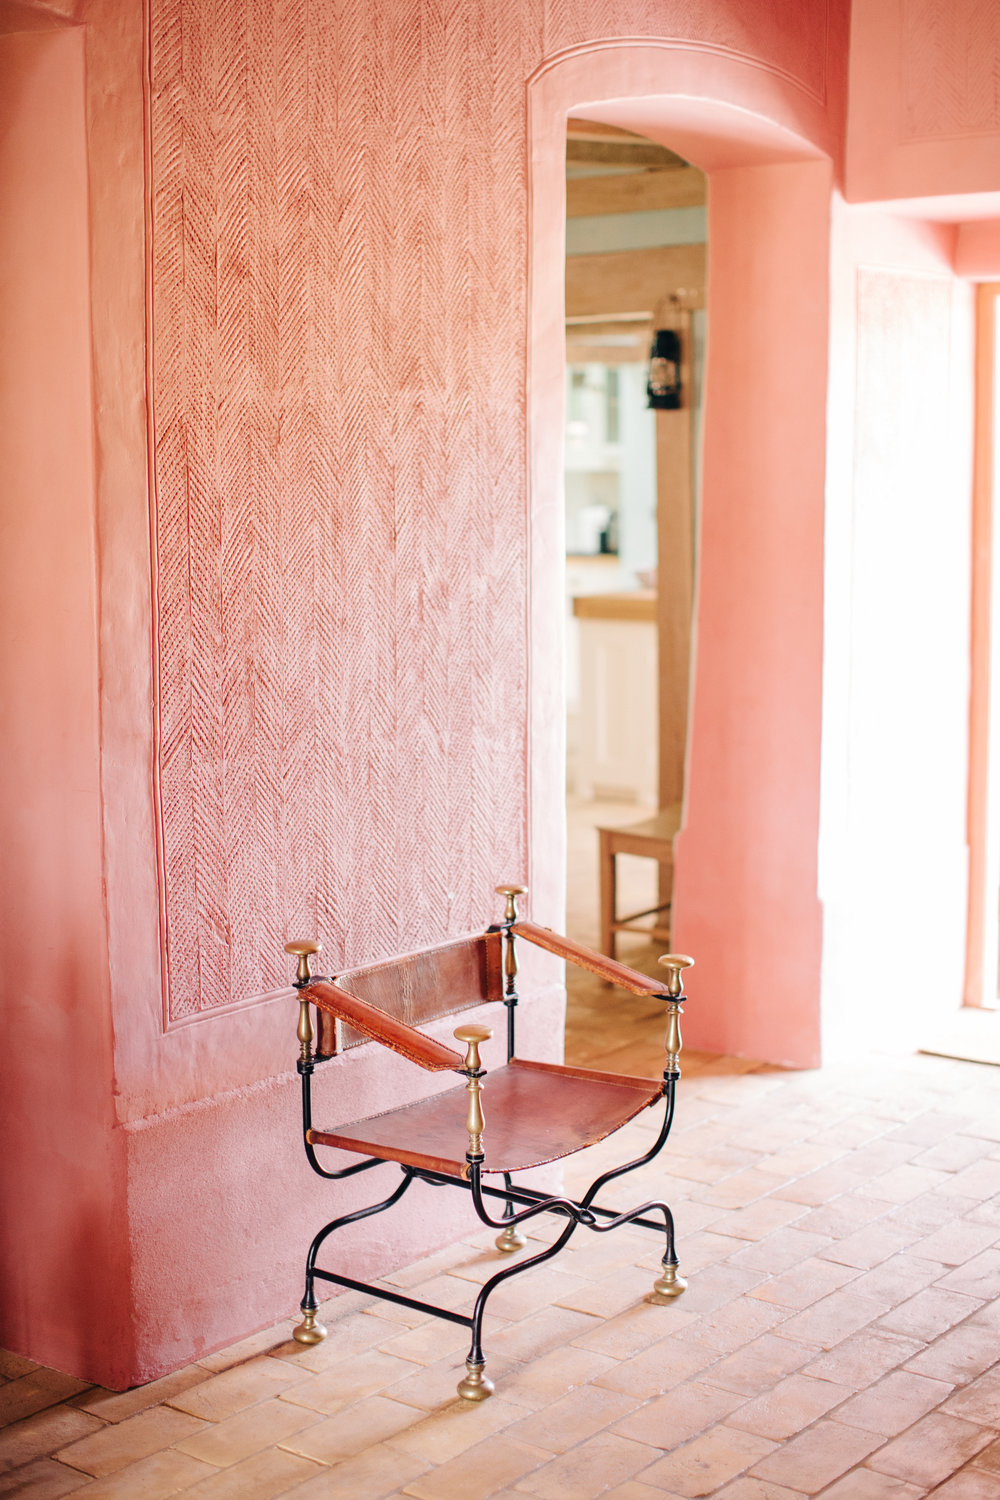 The Farmhouse's intricate details and carvings - and more pink!